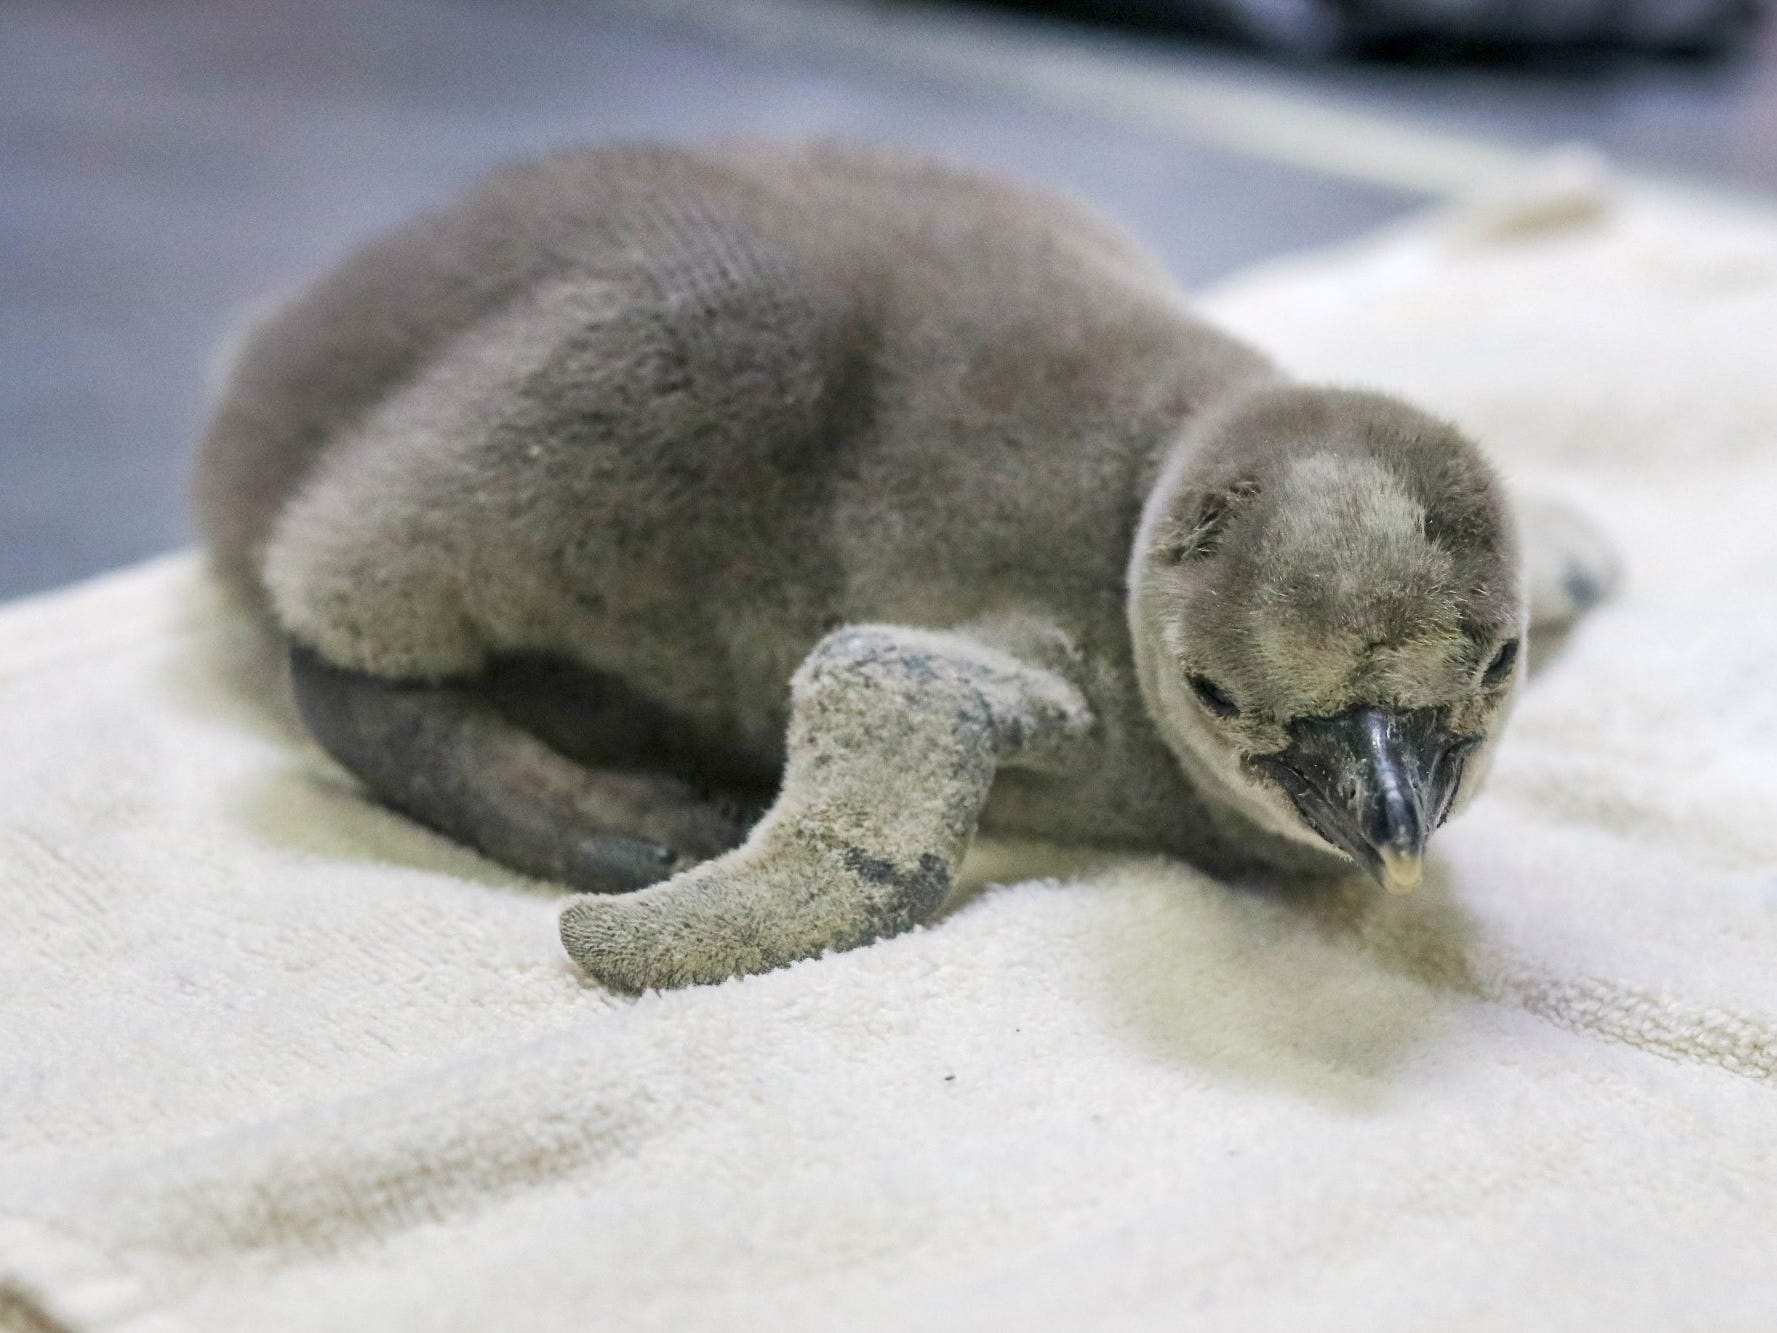 This Humboldt penguin chick hatched Feb. 15 at the Sedgwick County Zoo in Wichita, Kansas.